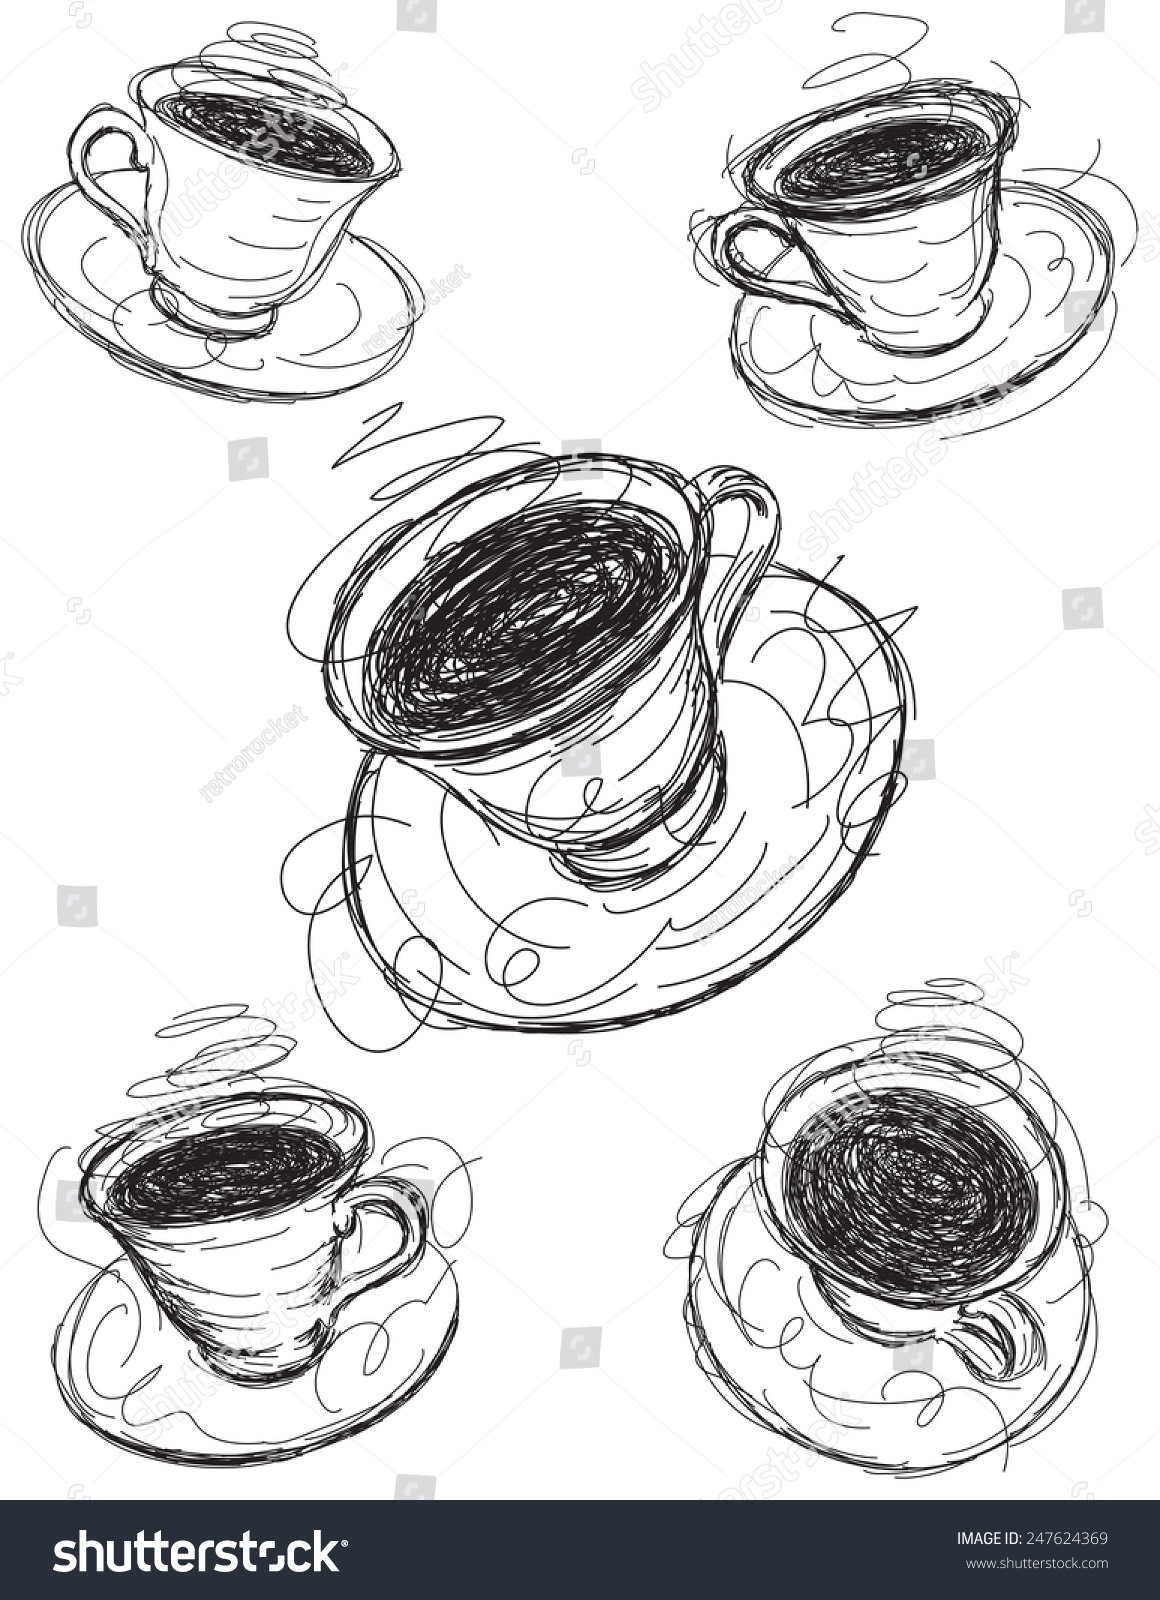 Coffee cup sketch - Coffee Cup Sketches